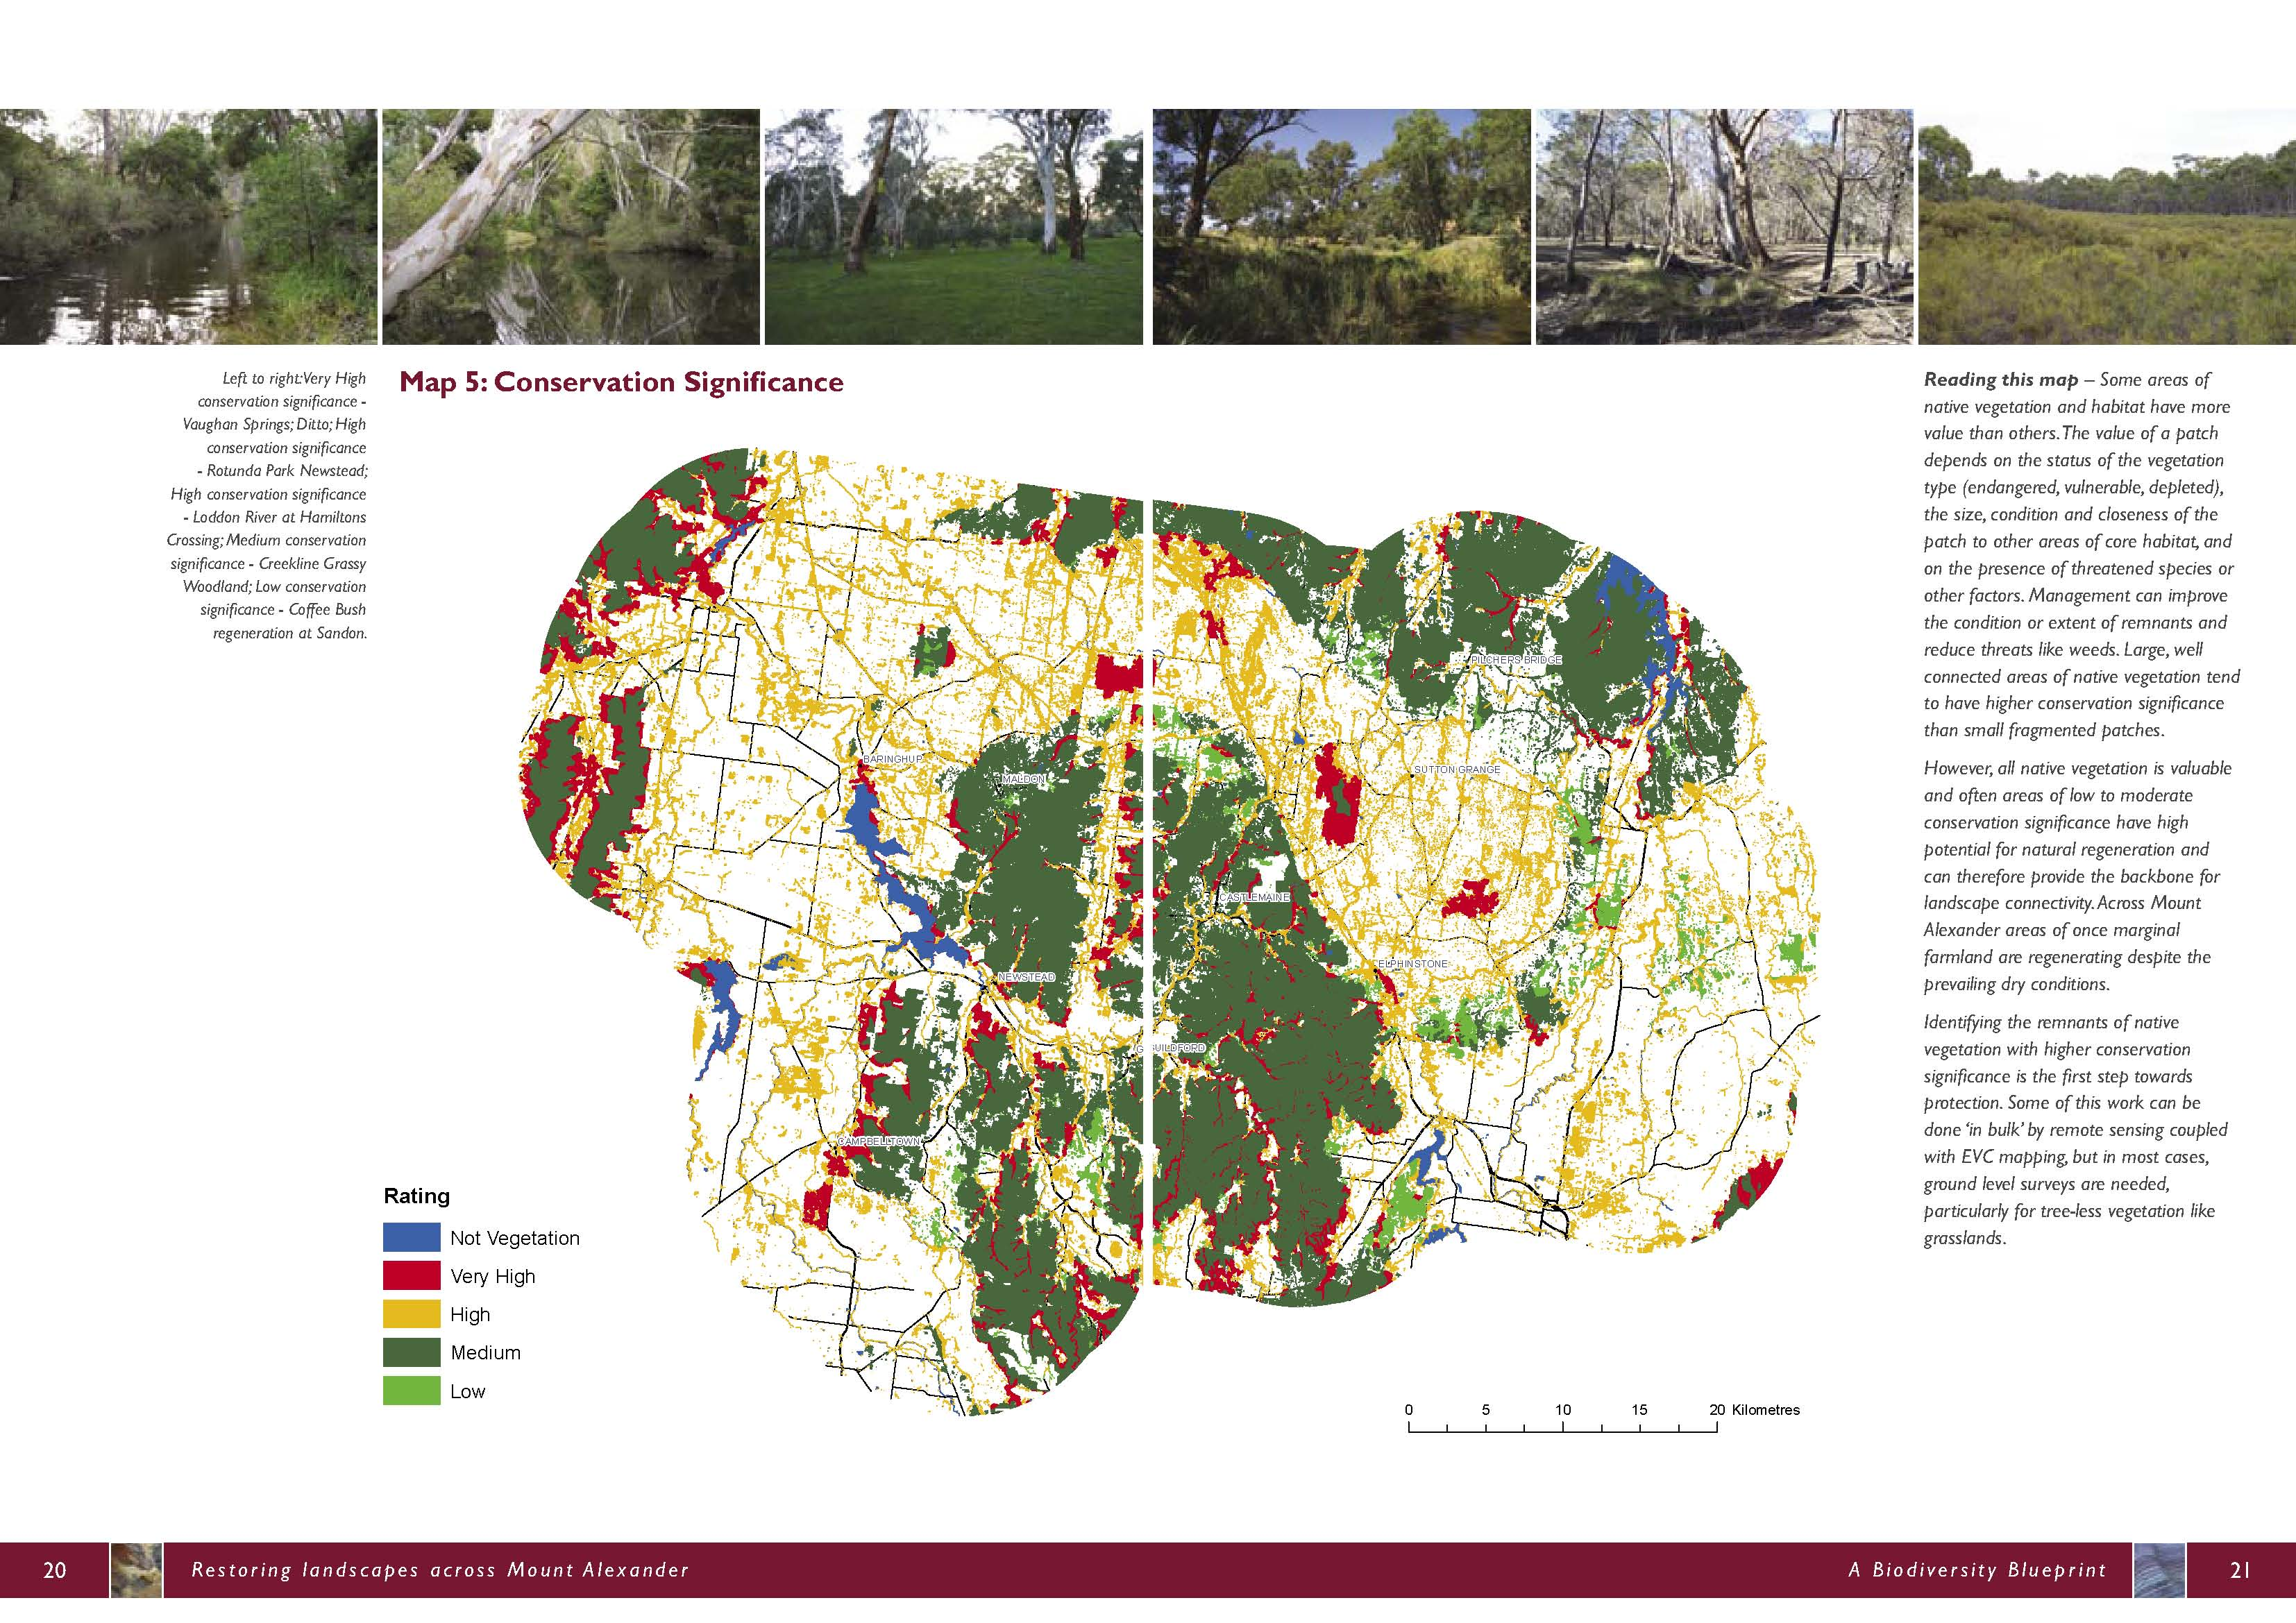 Biodiversity blueprint and strategic plan connecting country map 5 conservation significance malvernweather Choice Image